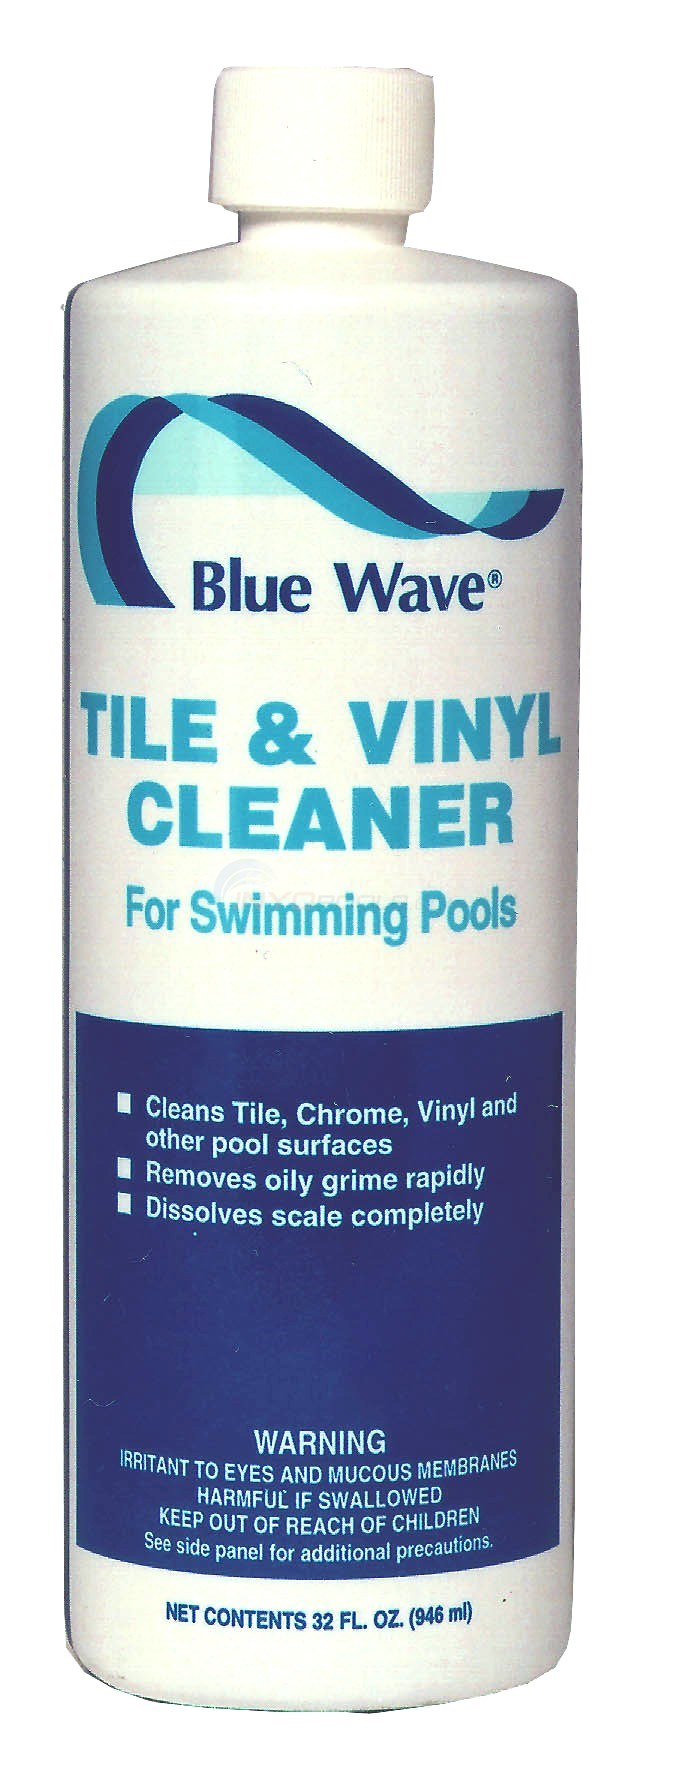 Blue Wave Tile & Vinyl Cleaner (1 Qt) - NY200